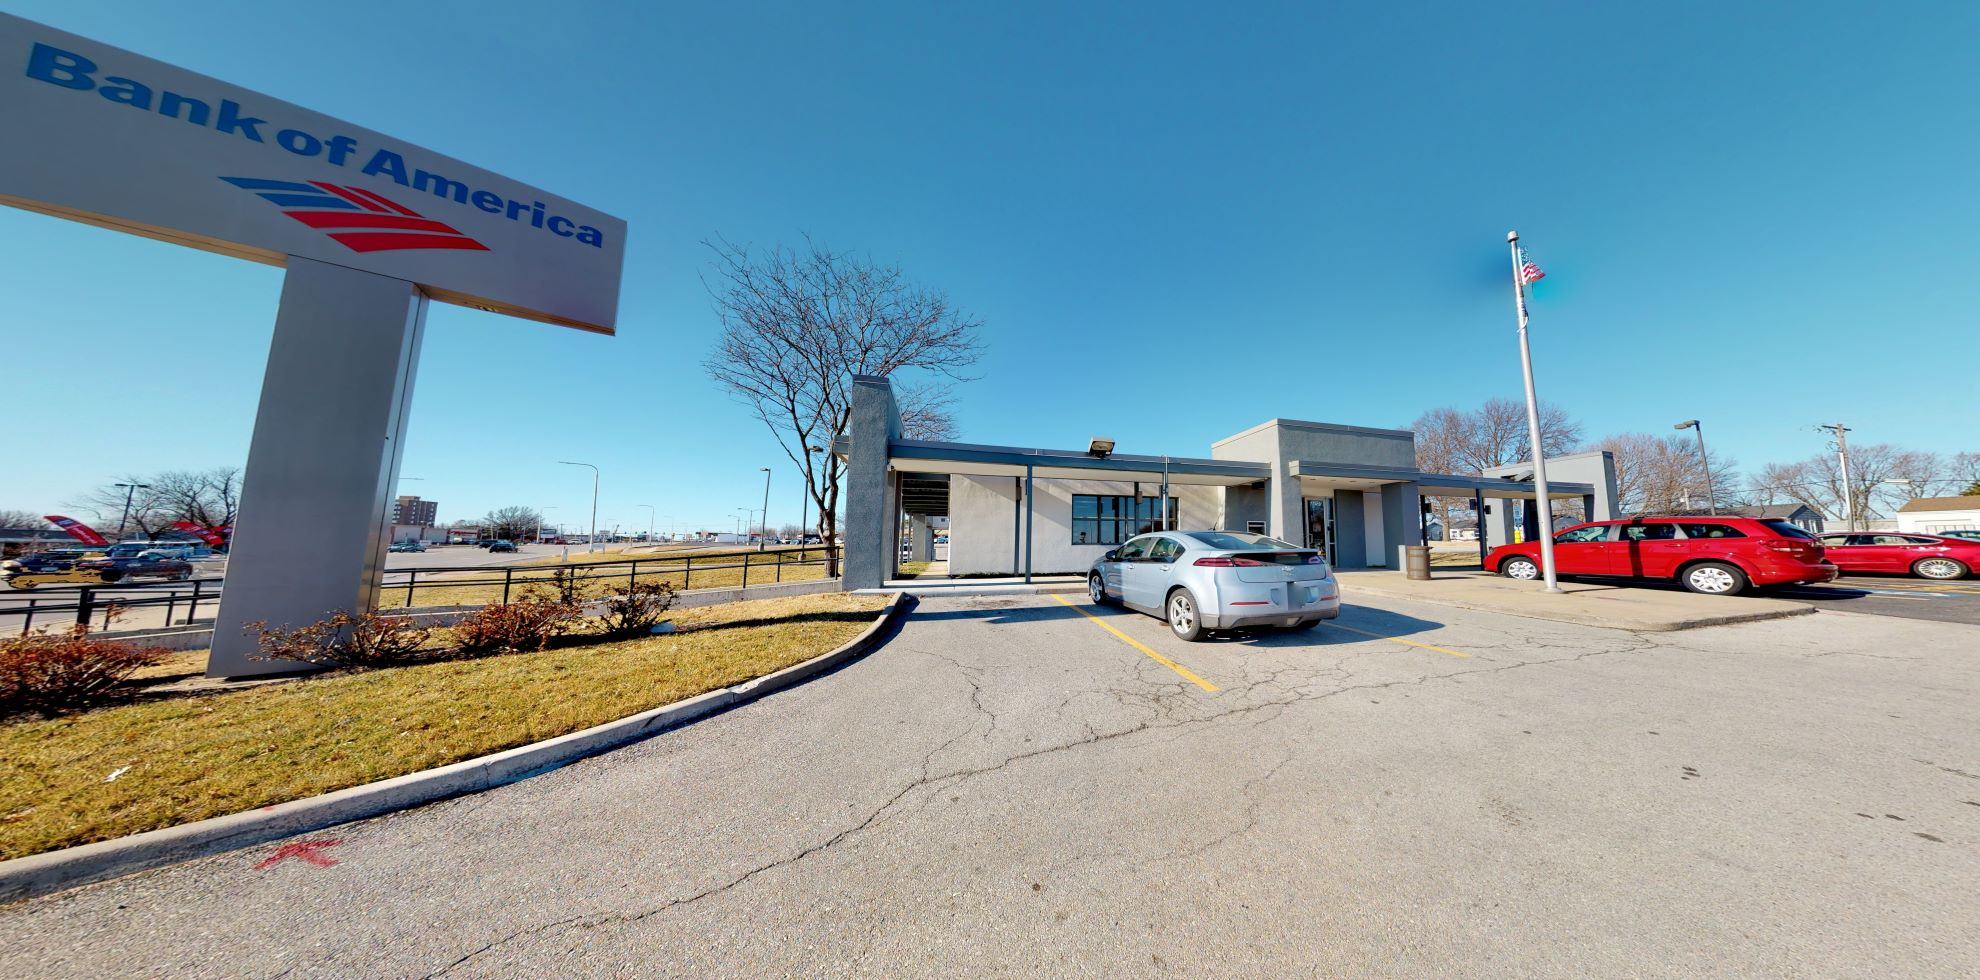 Bank of America financial center with drive-thru ATM   17410 E Highway 24, Independence, MO 64056